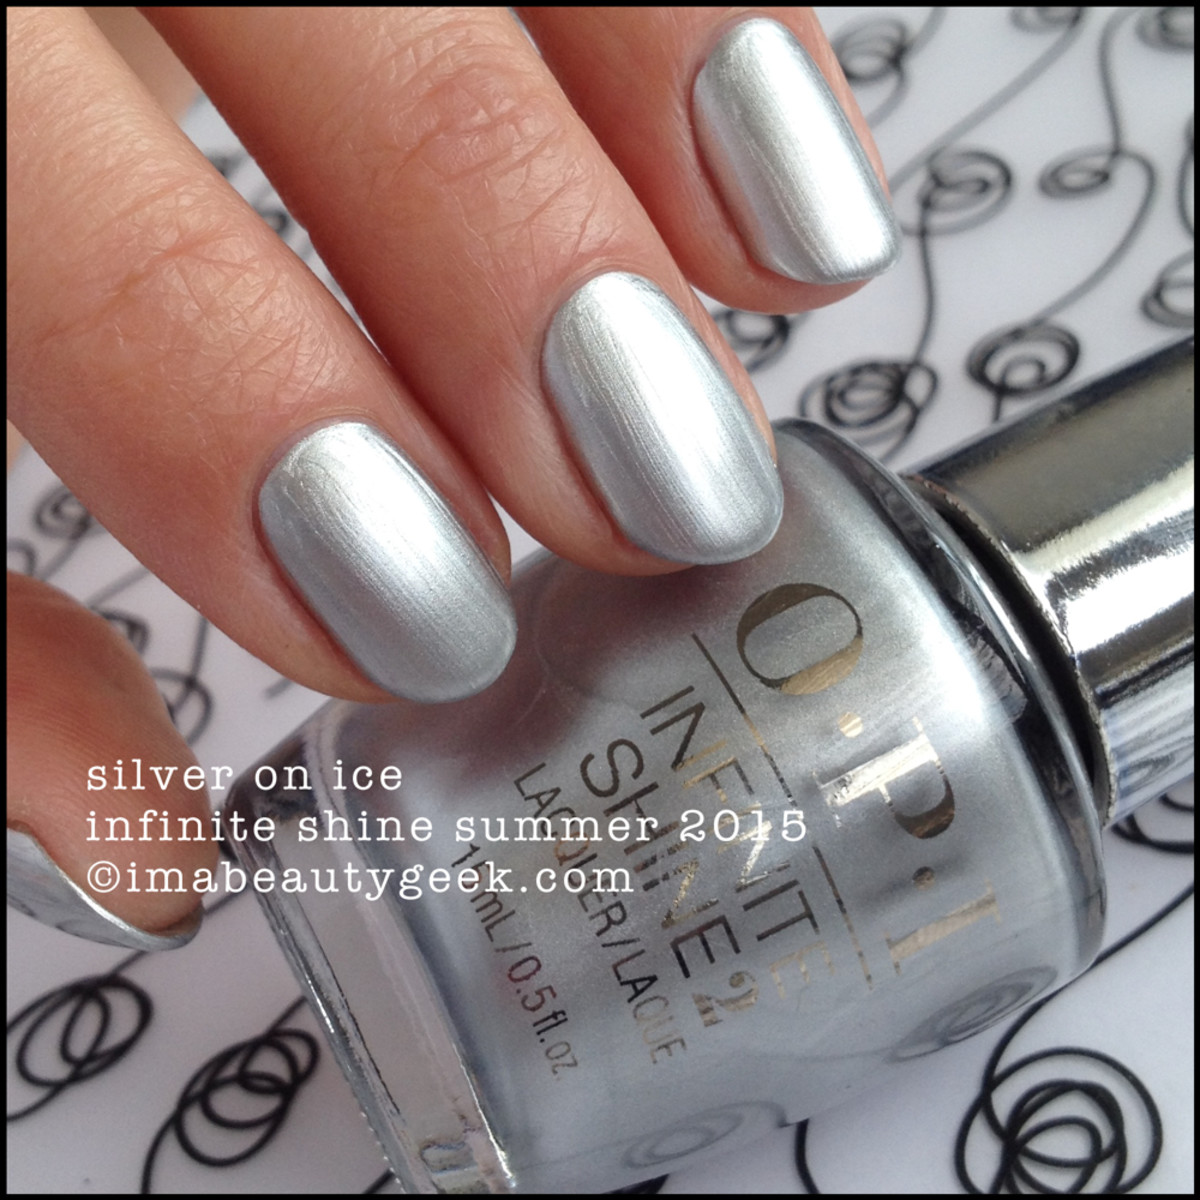 OPI Infinite Shine OPI Silver on Ice Summer 2015